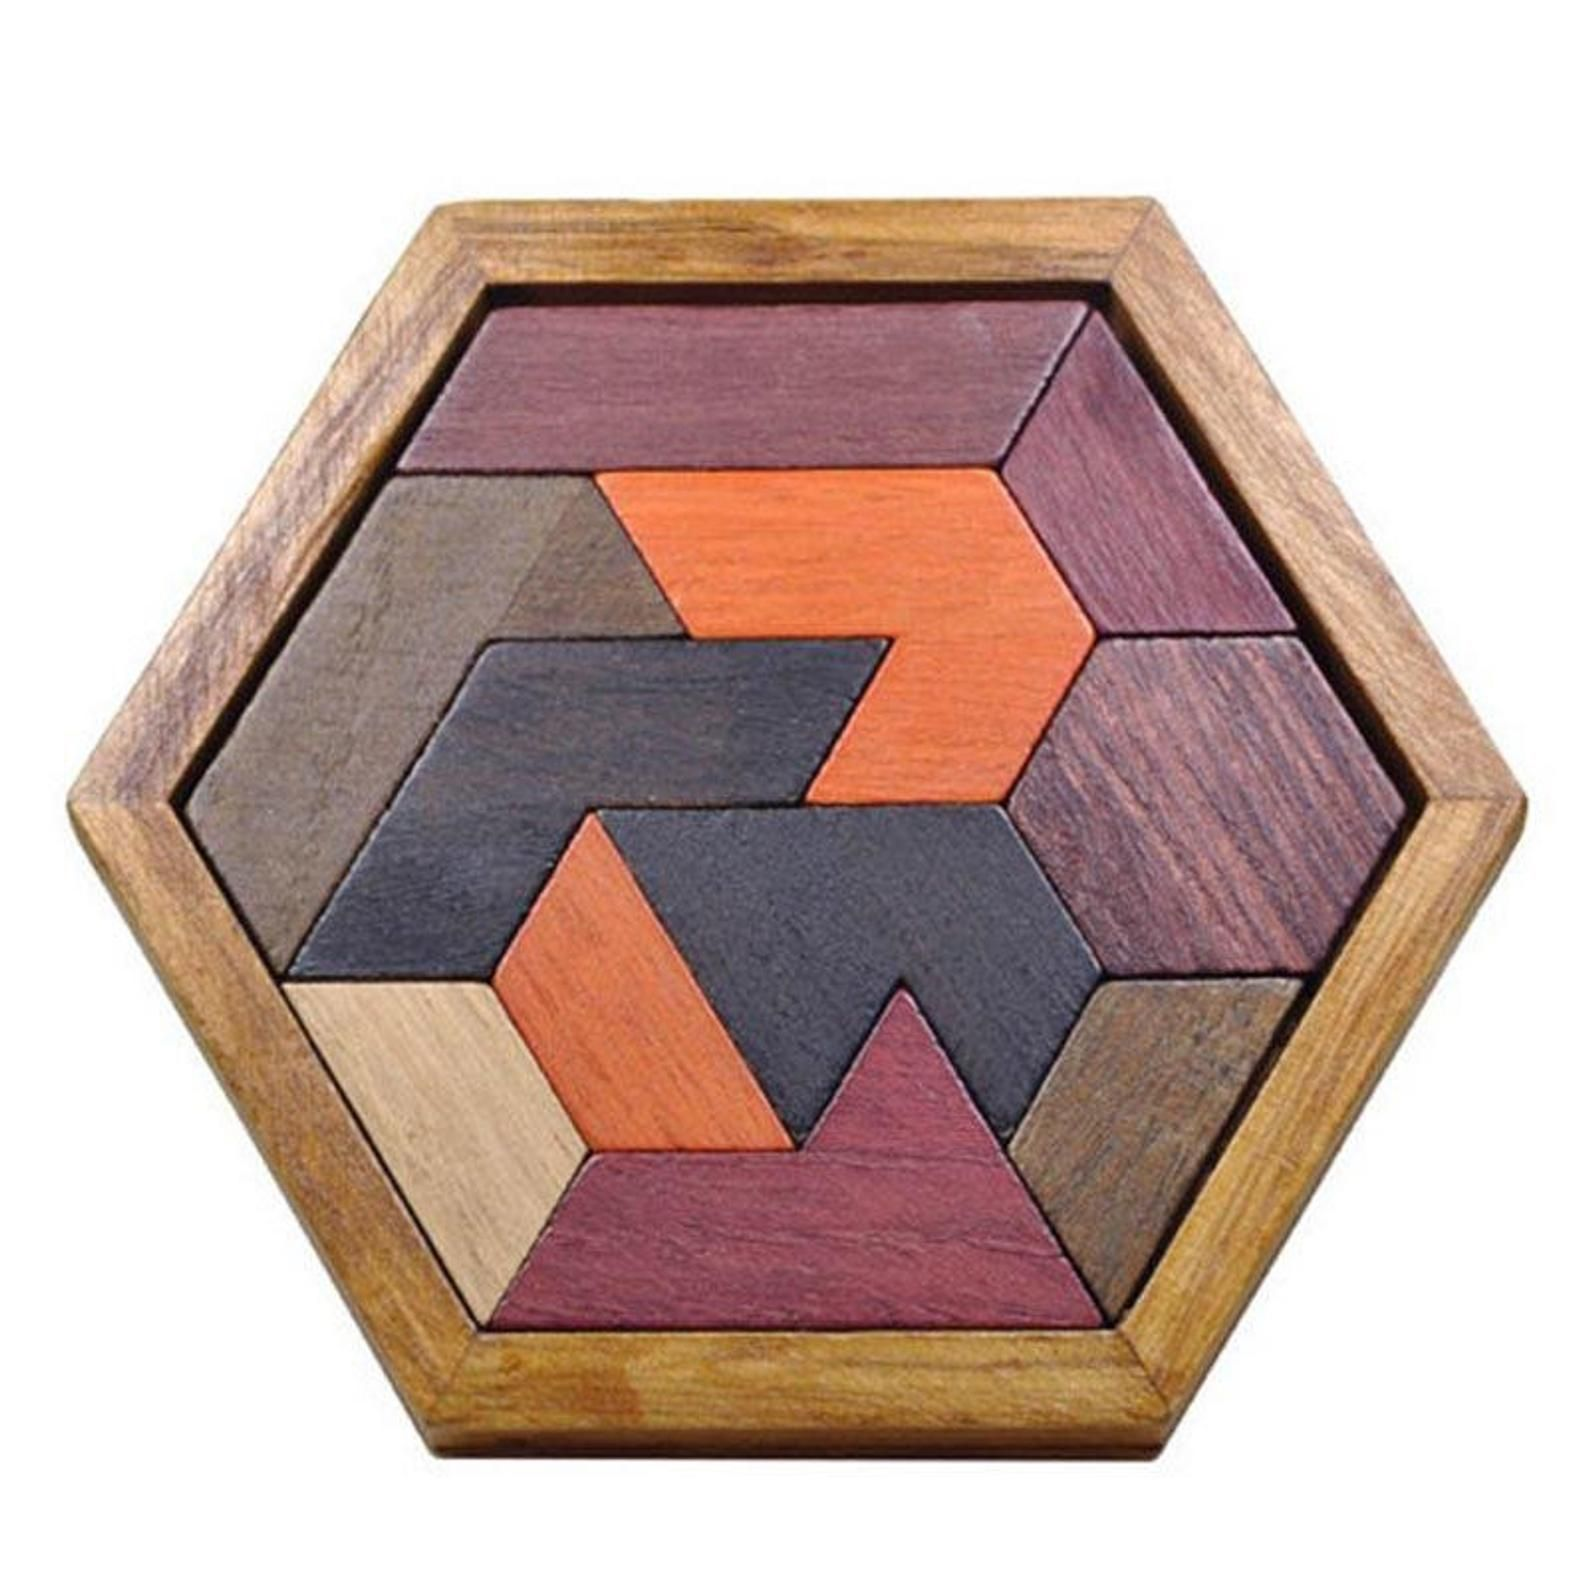 New daily puzzles each and every day! Wooden tangram puzzle wooden puzzle board Jigsaw puzzle ...